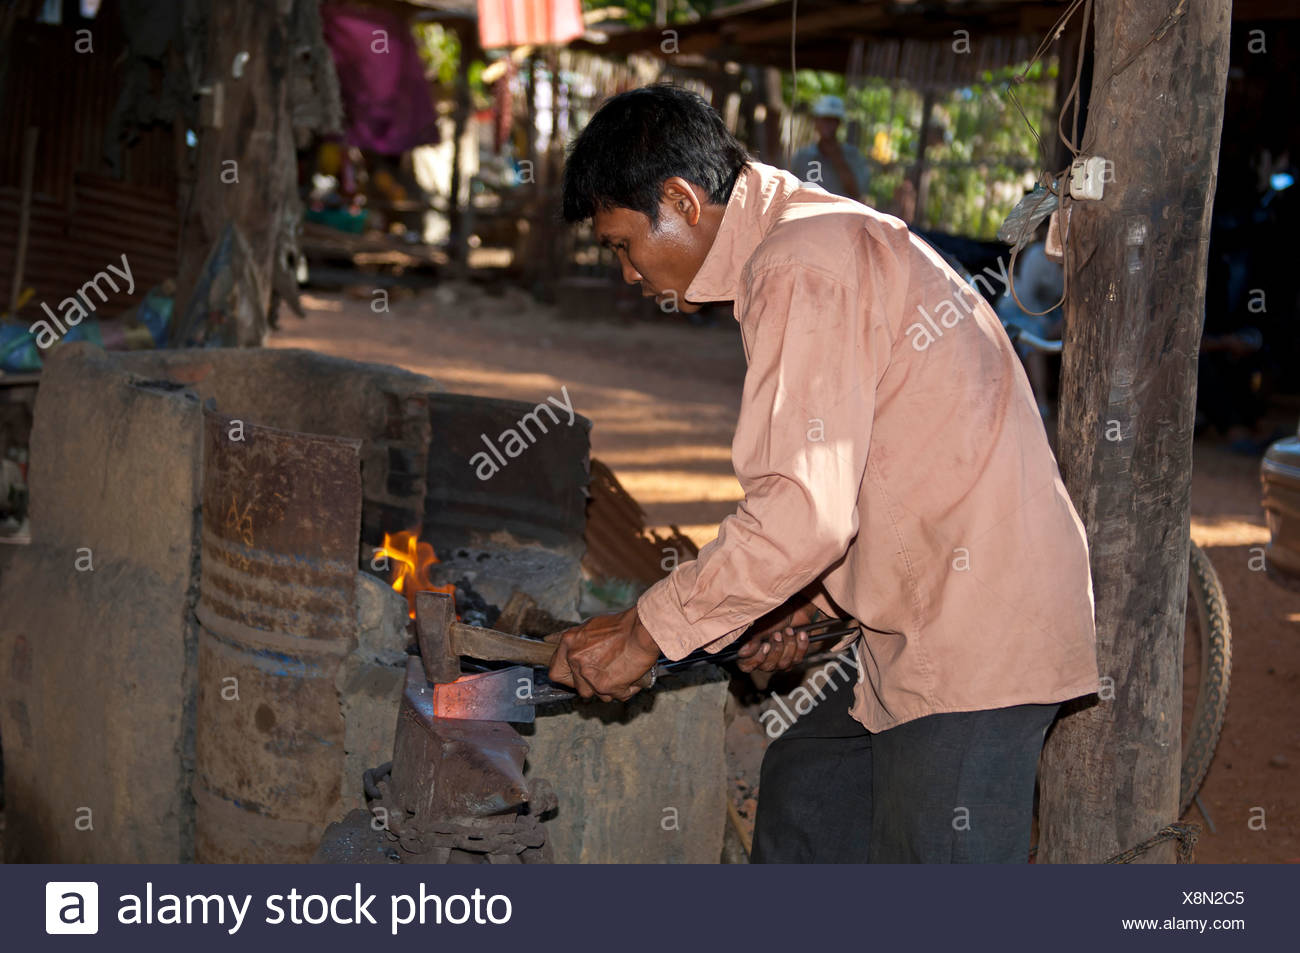 Blacksmith forging red-hot iron in a forge, Battambang, Cambodia - Stock Image